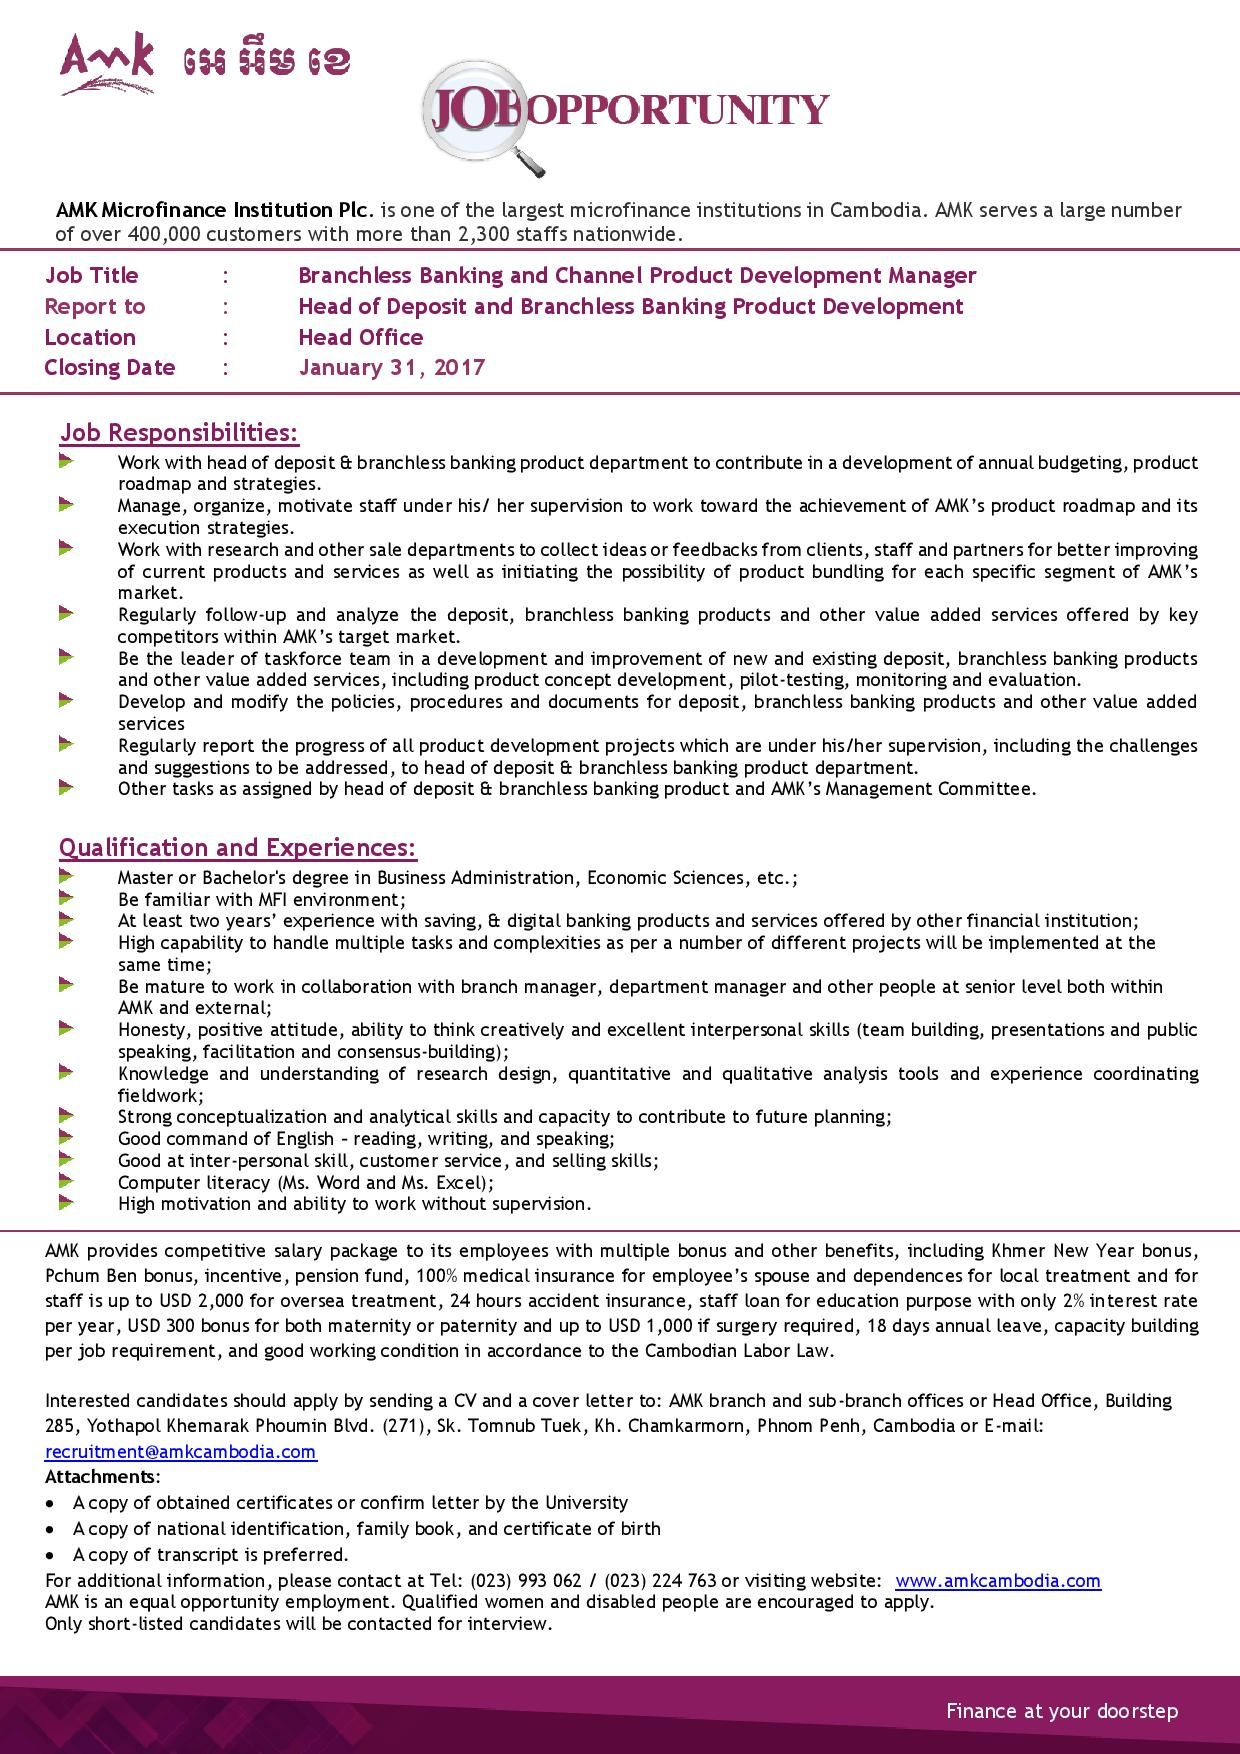 sample cover letter for airport ramp agent volunteer appointment patriotexpressus winsome examples resume travel agency resumes - Resumes Layout